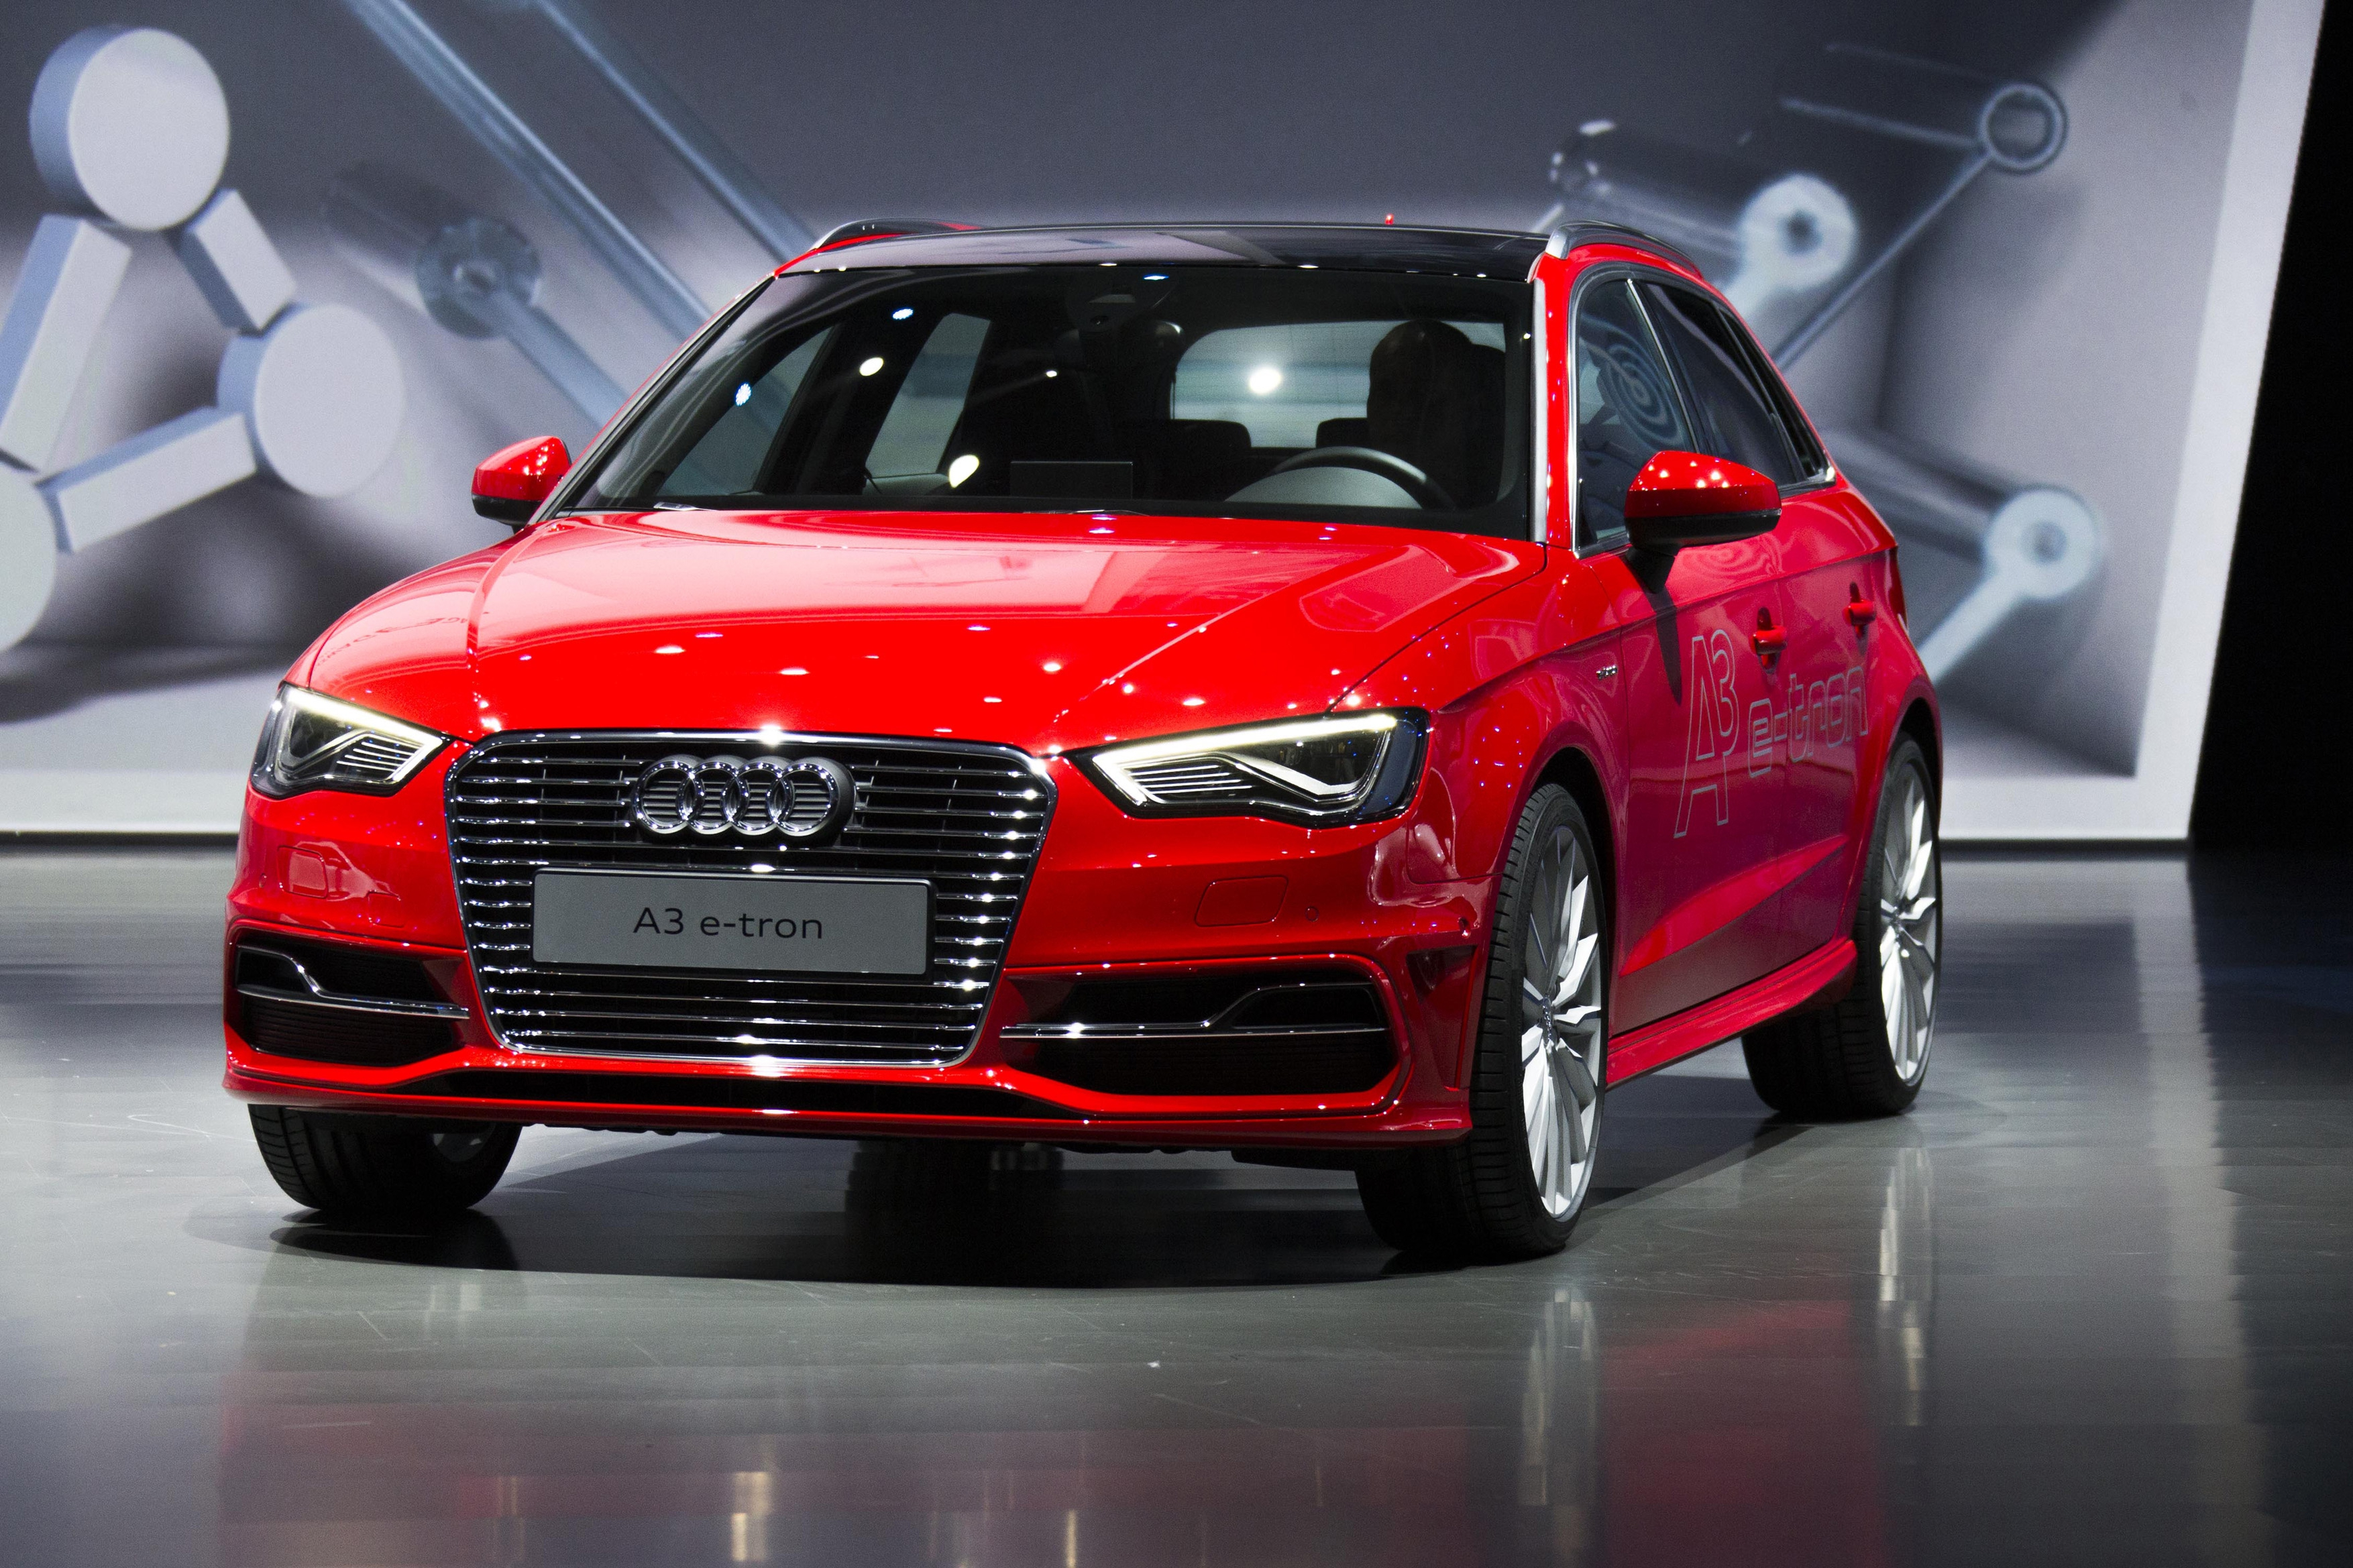 audi a3 sportback e tron wallpapers images photos pictures. Black Bedroom Furniture Sets. Home Design Ideas